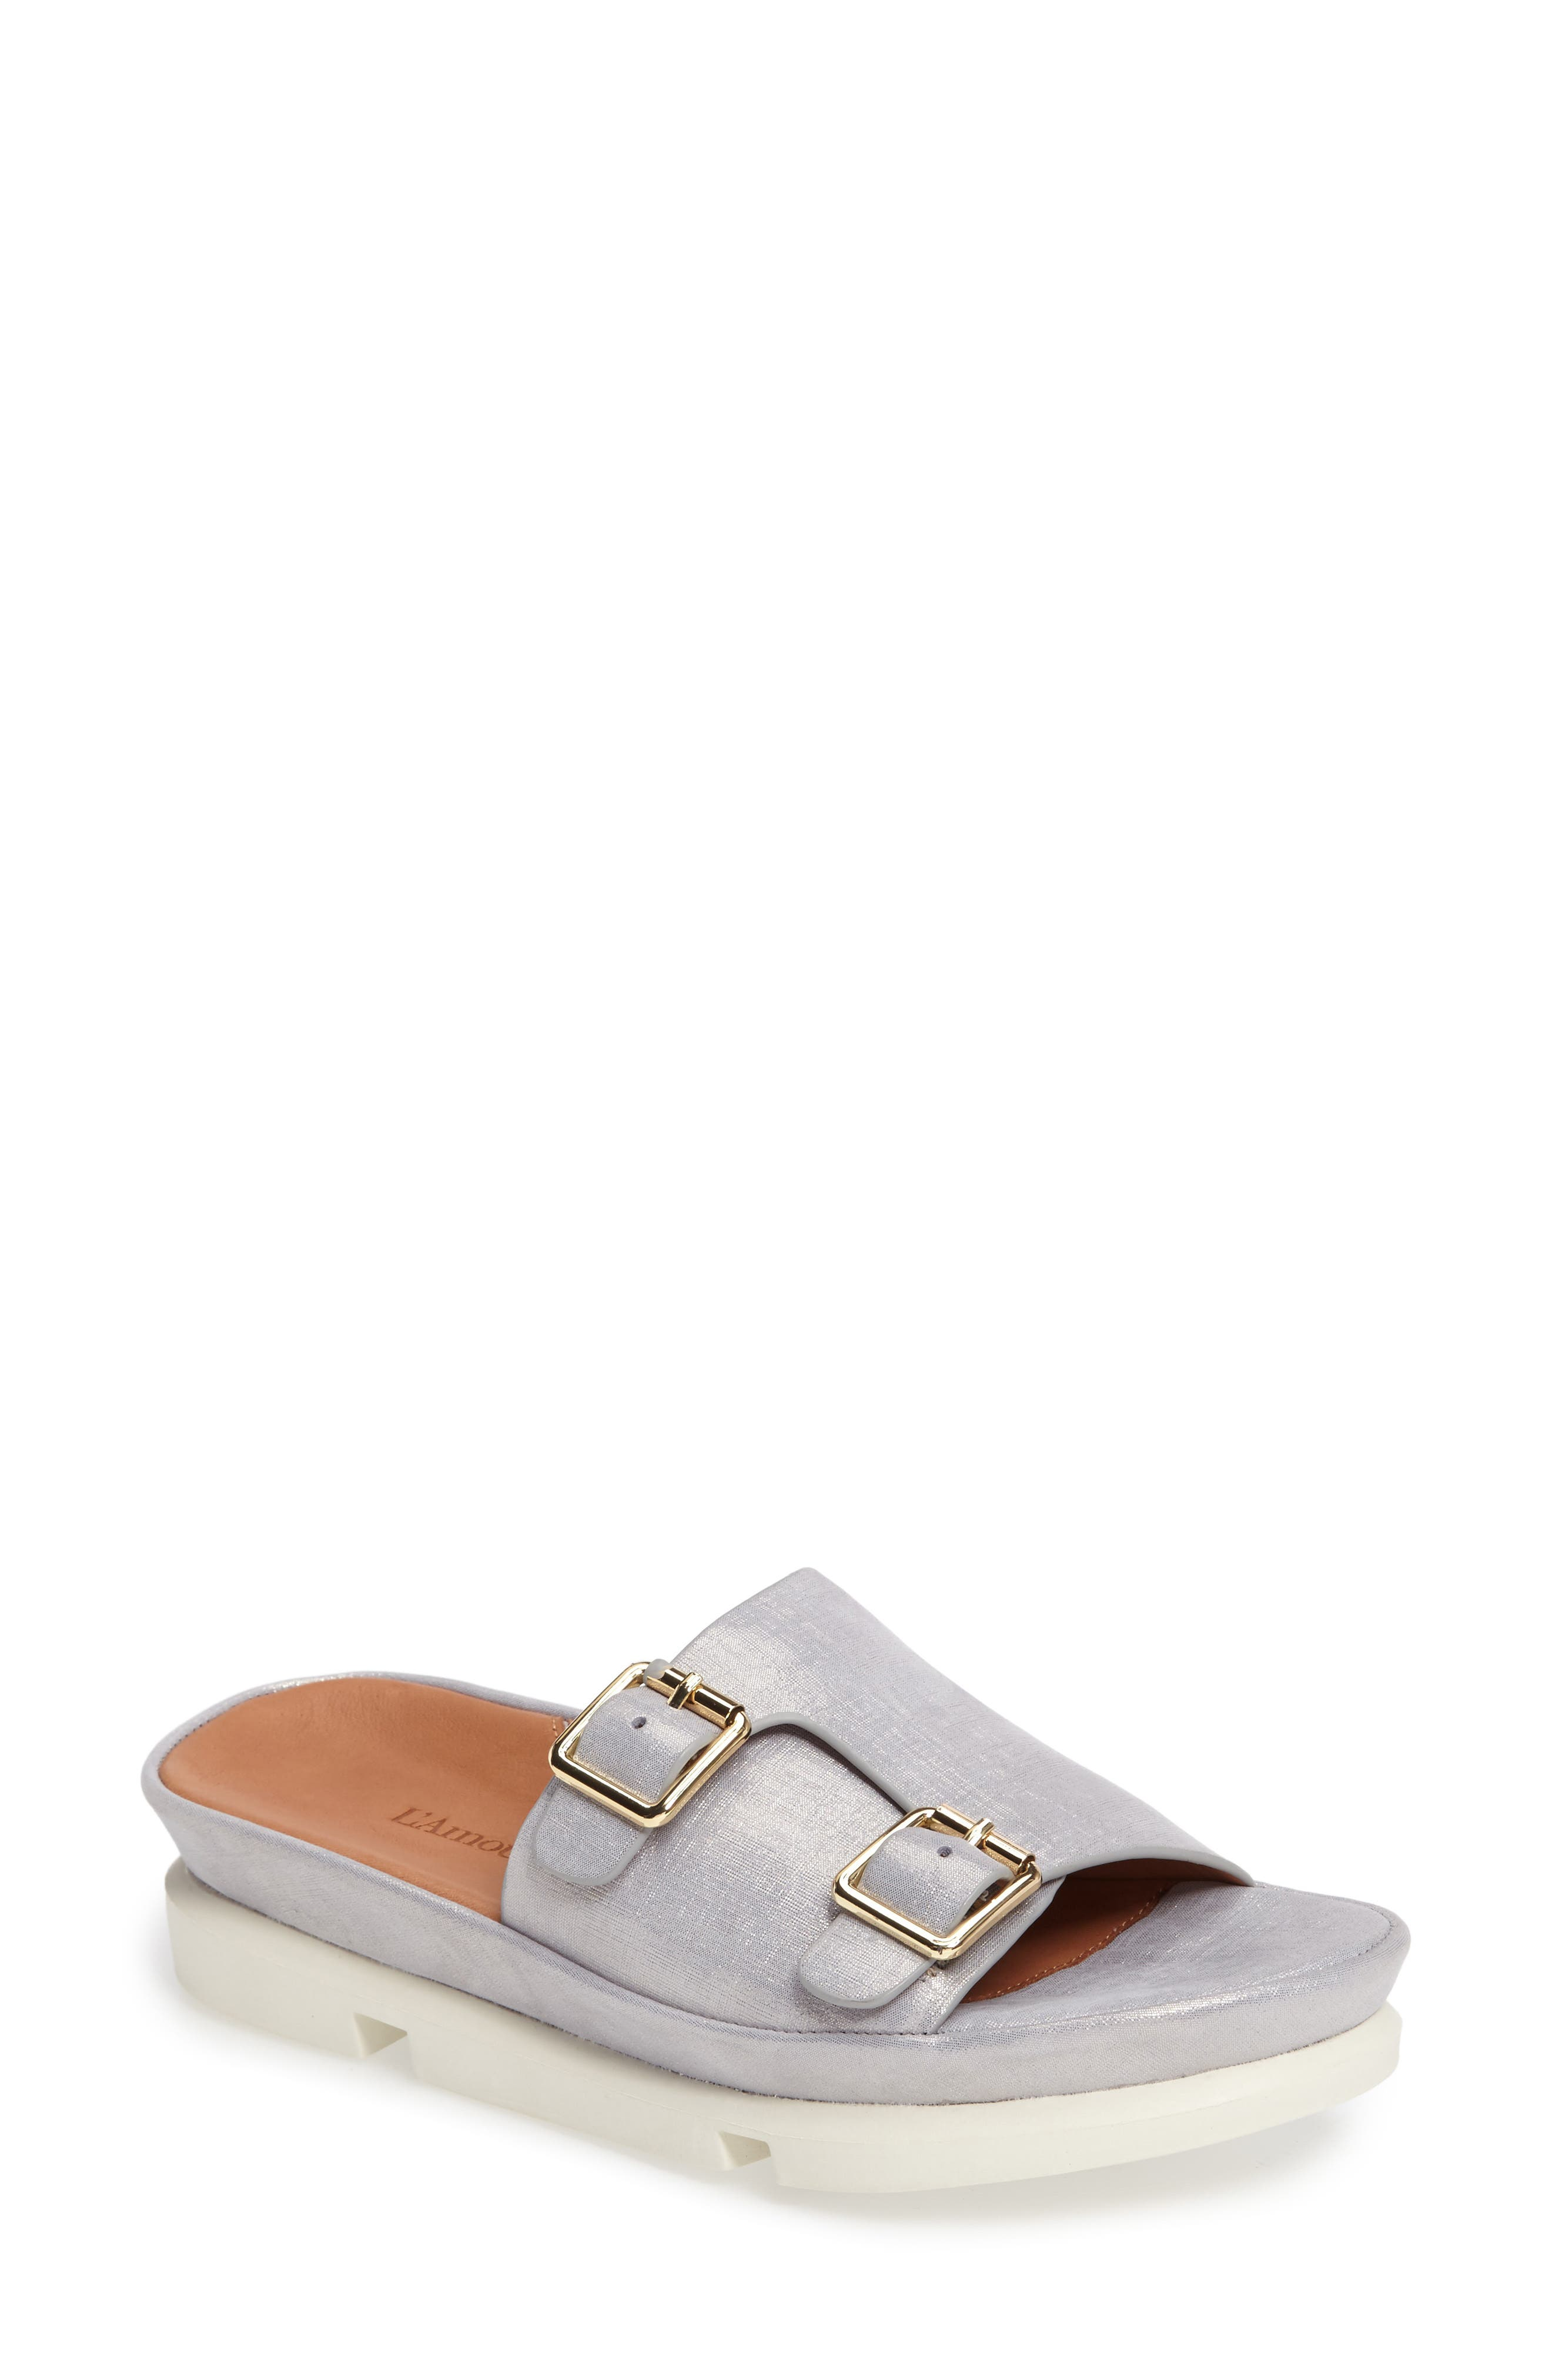 A soft and shimmering leather upper upgrades a comfy slide fitted with a cushioned memory-foam insole and set atop a chunky segmented sole. Style Name:L\\\'Amour Des Pieds Viareggio Slide Sandal (Women). Style Number: 5290198. Available in stores.